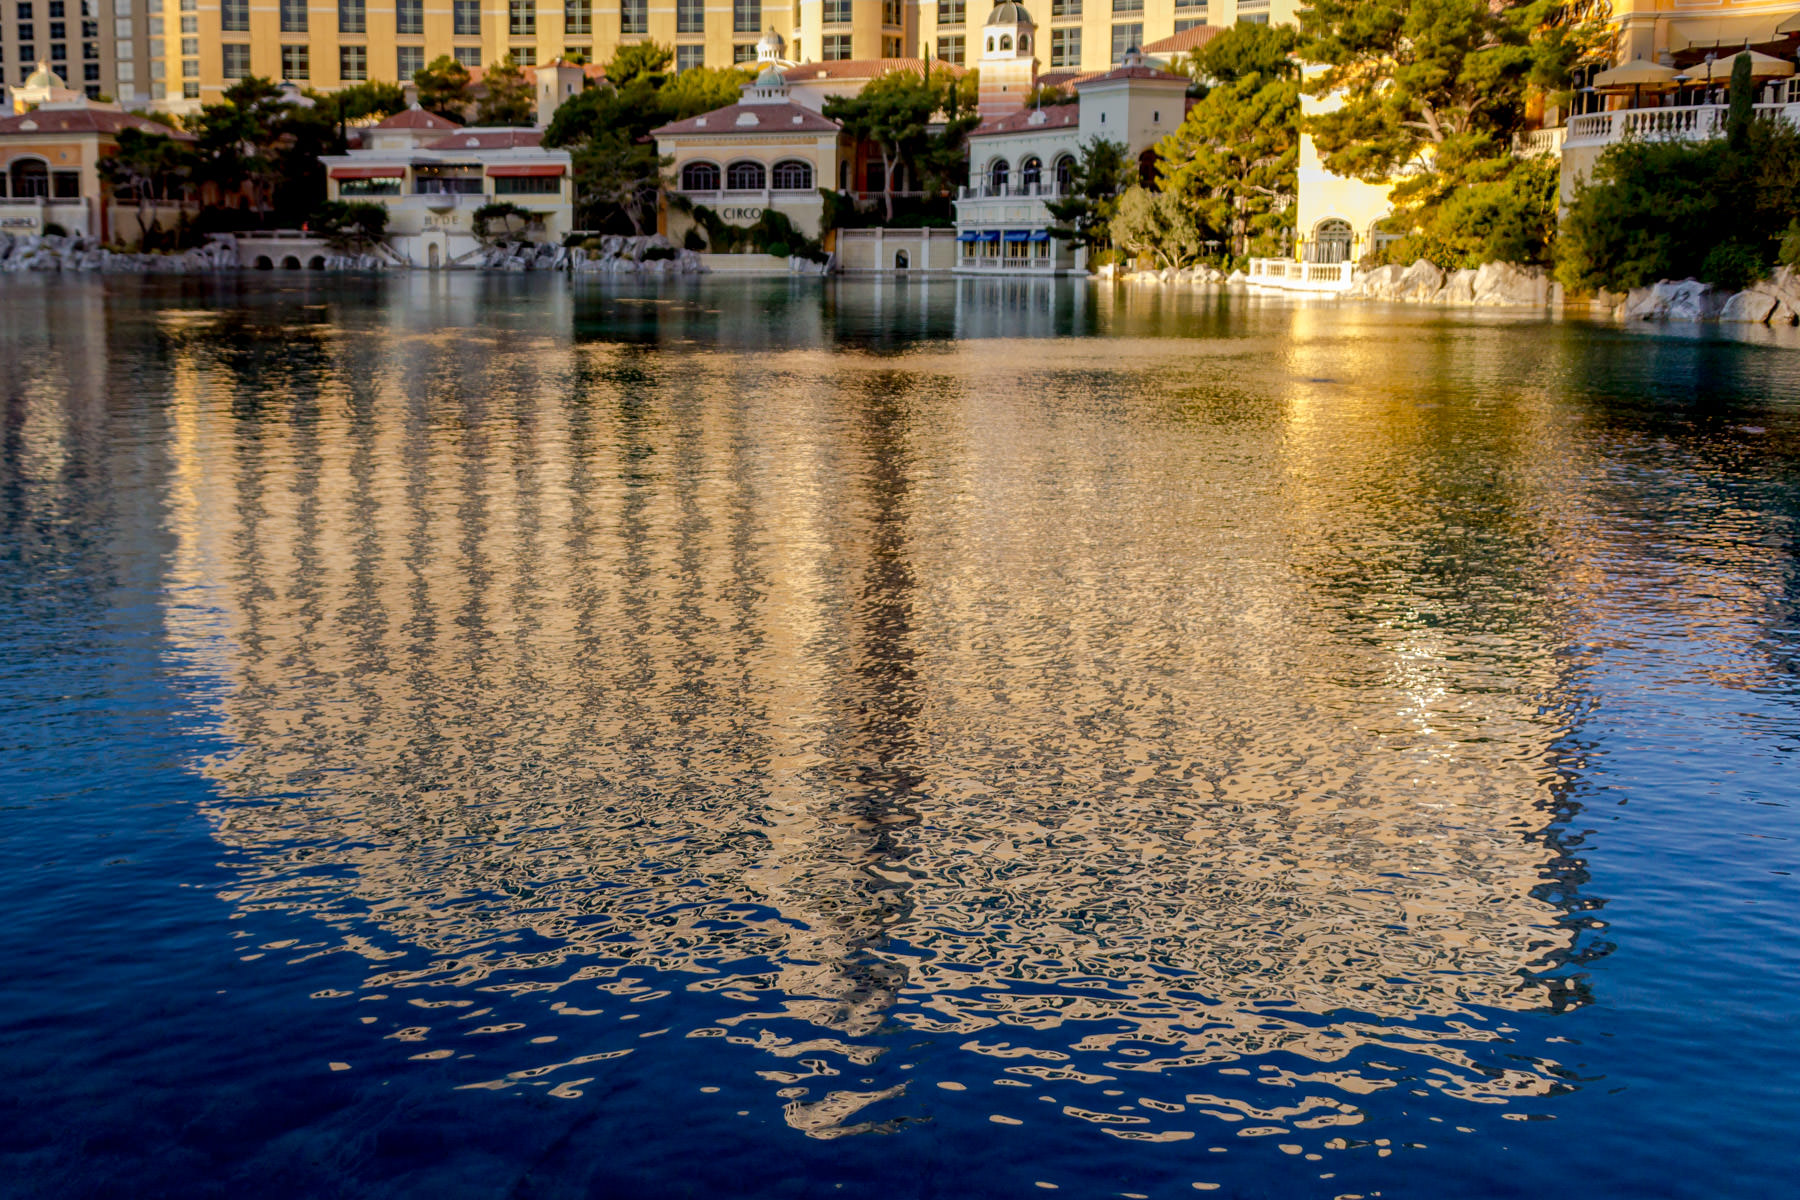 The main hotel tower of Las Vegas' Bellagio, reflected in the 8-acre (3.2 ha) man-made lake that sits between the casino and The Strip.